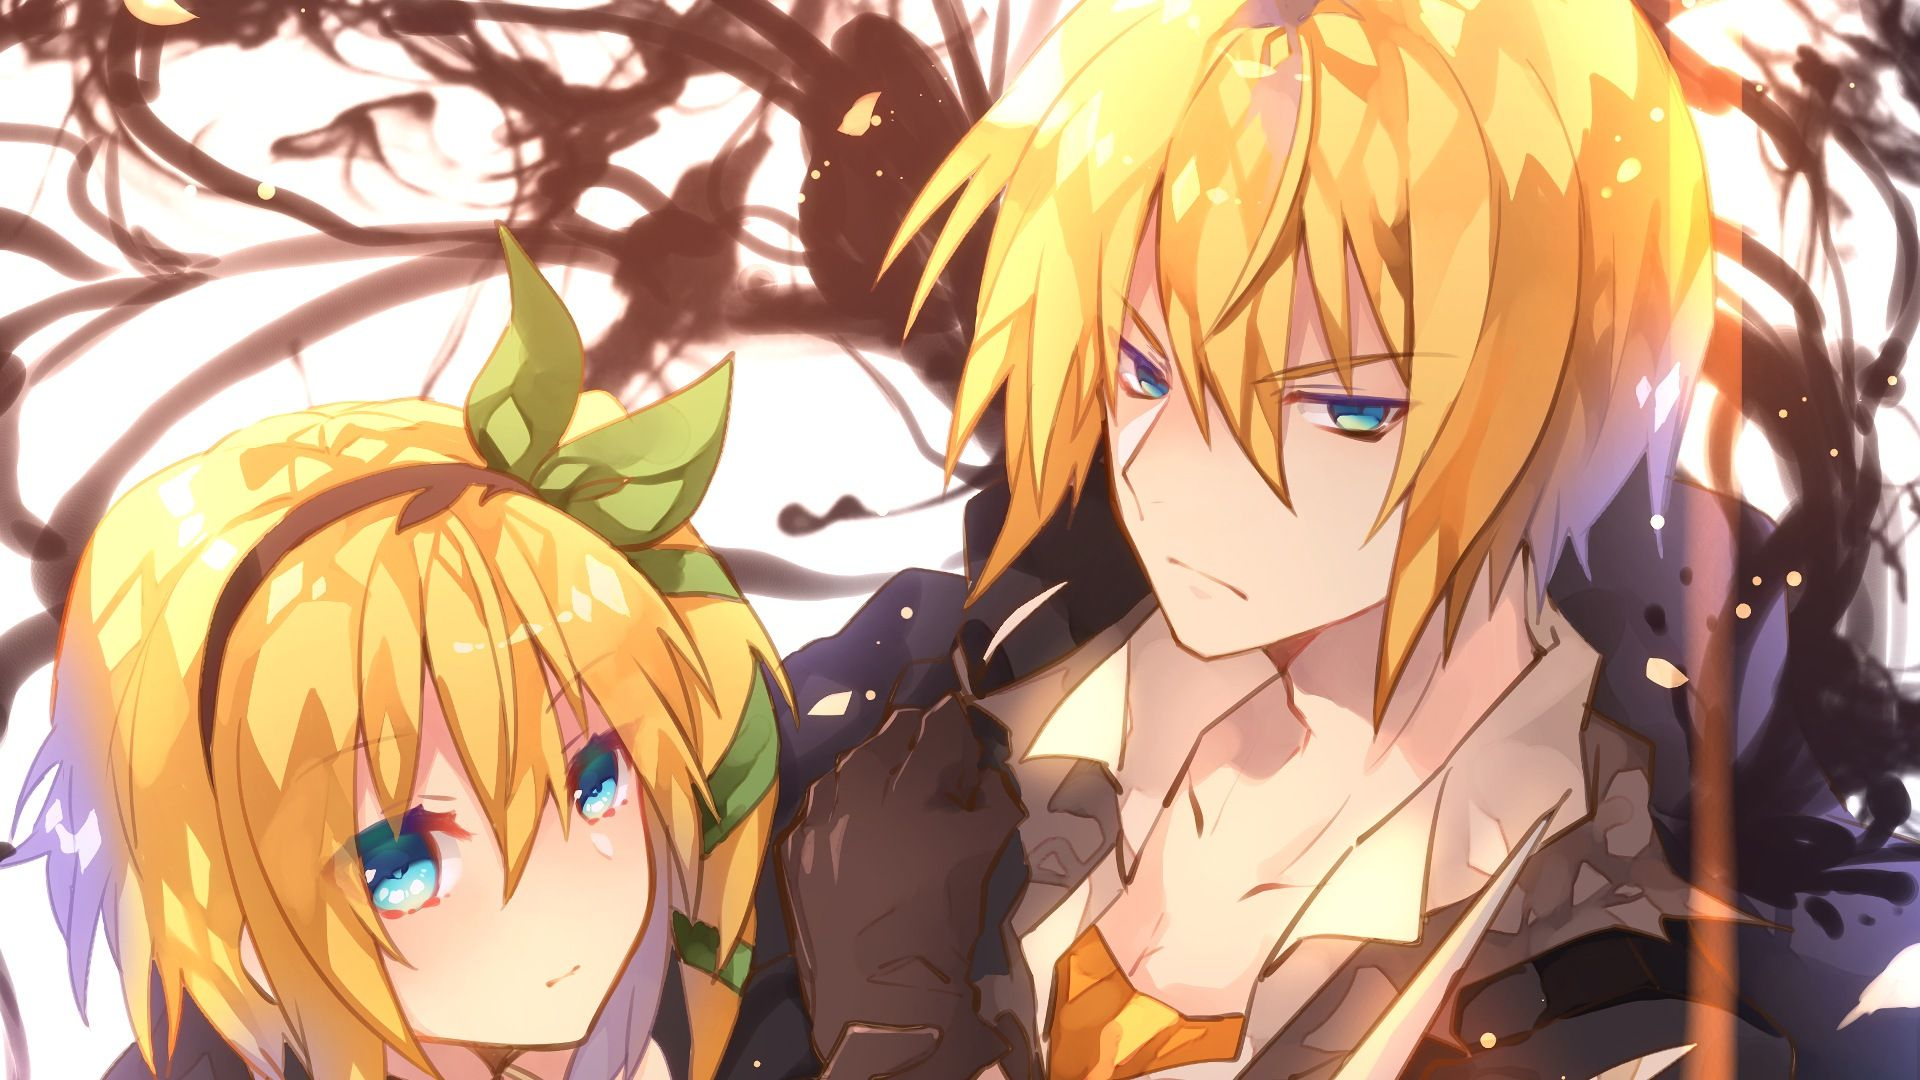 Edna And Eizen Tales Of Zestiria My Two Favorite Siblings Even